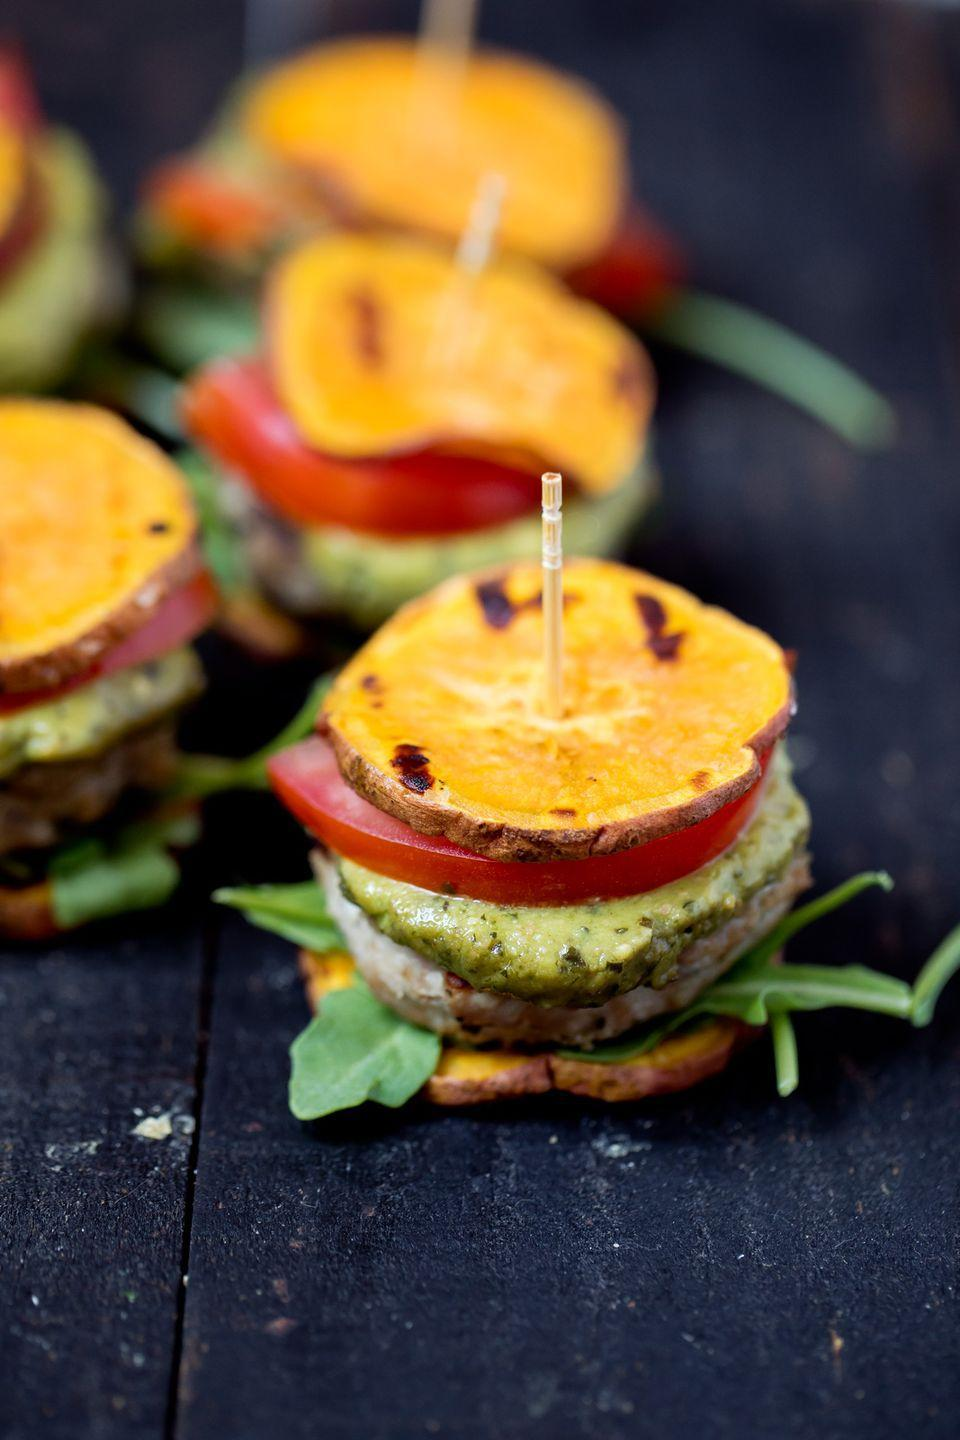 "<p>Even though you're eating healthy, it's not the Super Bowl without sliders. These turkey sliders use sweet potato slices instead of buns.</p><p><strong>Get the recipe at <a href=""https://www.ambitiouskitchen.com/pesto-turkey-burger-sliders-sweet-potato-buns/"" rel=""nofollow noopener"" target=""_blank"" data-ylk=""slk:Ambitious Kitchen"" class=""link rapid-noclick-resp"">Ambitious Kitchen</a>. </strong></p><p><strong><a class=""link rapid-noclick-resp"" href=""https://www.amazon.com/Lodge-Square-Pre-seasoned-Draining-Grilling/dp/B0000CF66W/?tag=syn-yahoo-20&ascsubtag=%5Bartid%7C10063.g.35089489%5Bsrc%7Cyahoo-us"" rel=""nofollow noopener"" target=""_blank"" data-ylk=""slk:SHOP GRILL PANS"">SHOP GRILL PANS</a><br></strong></p>"